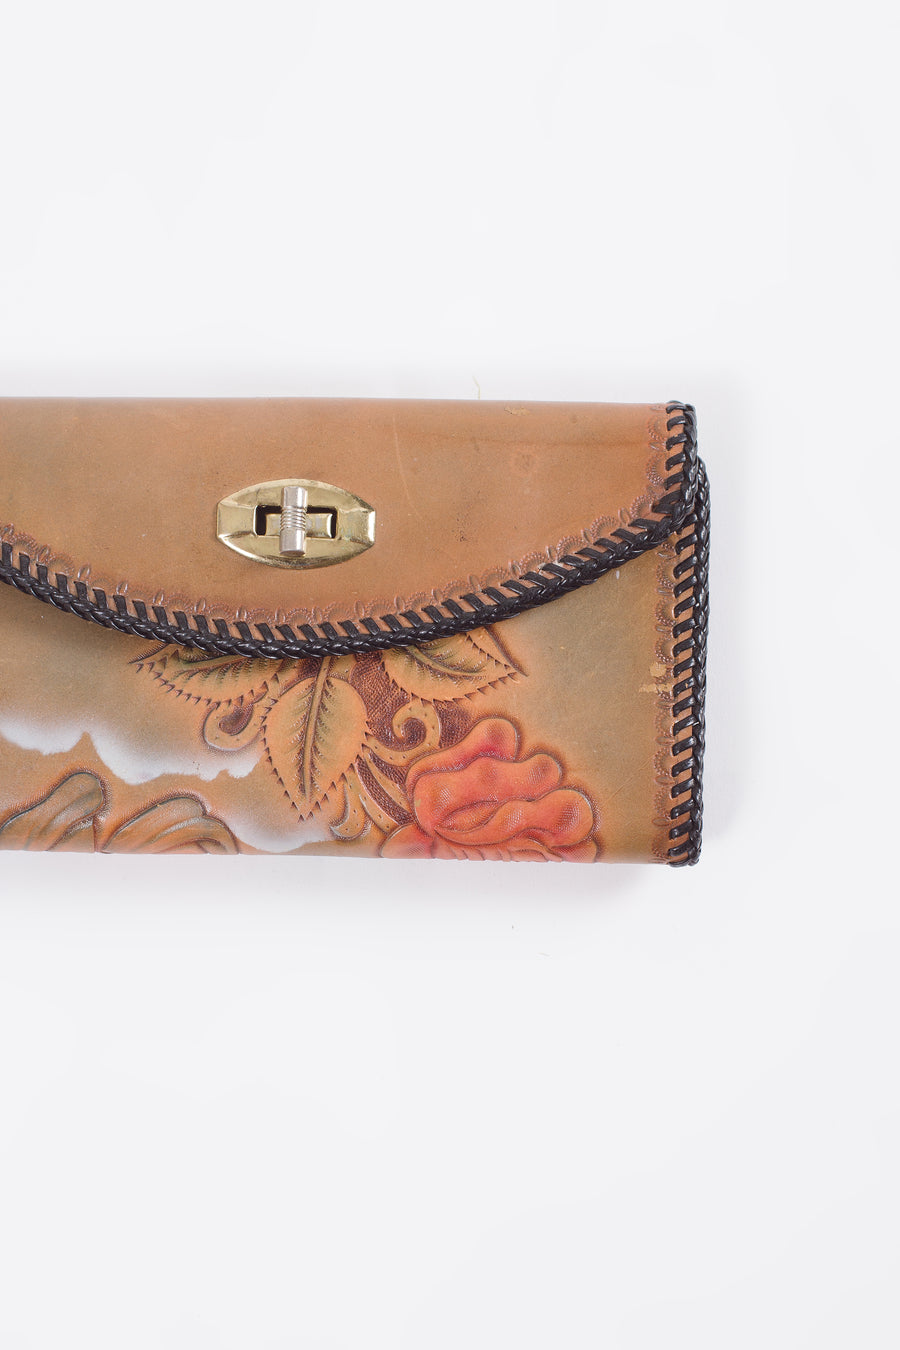 Vintage Western Leather Wallet